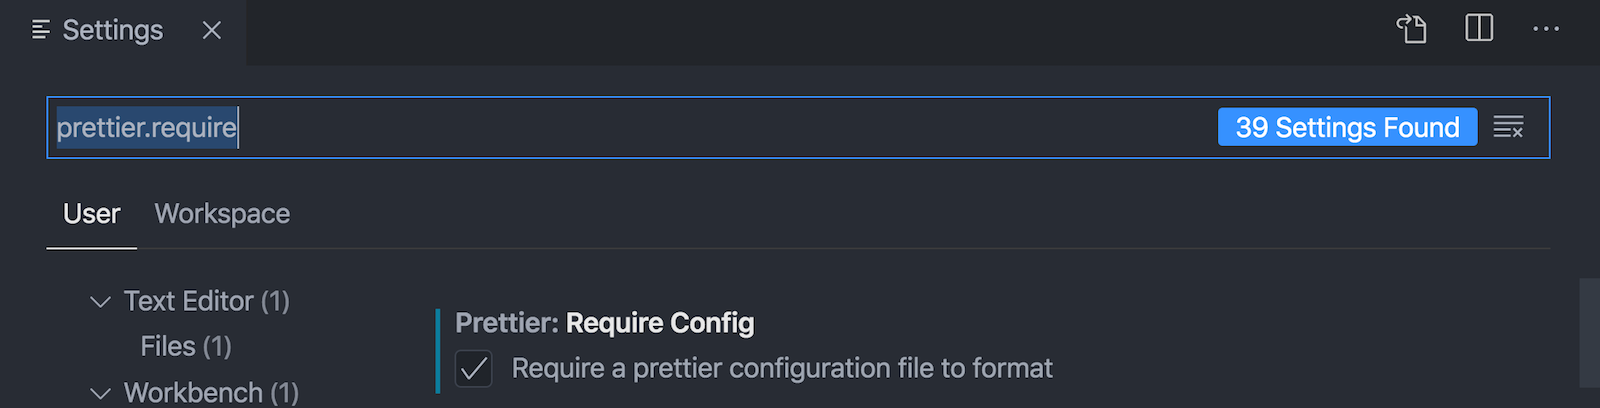 User global setting to require configuration file